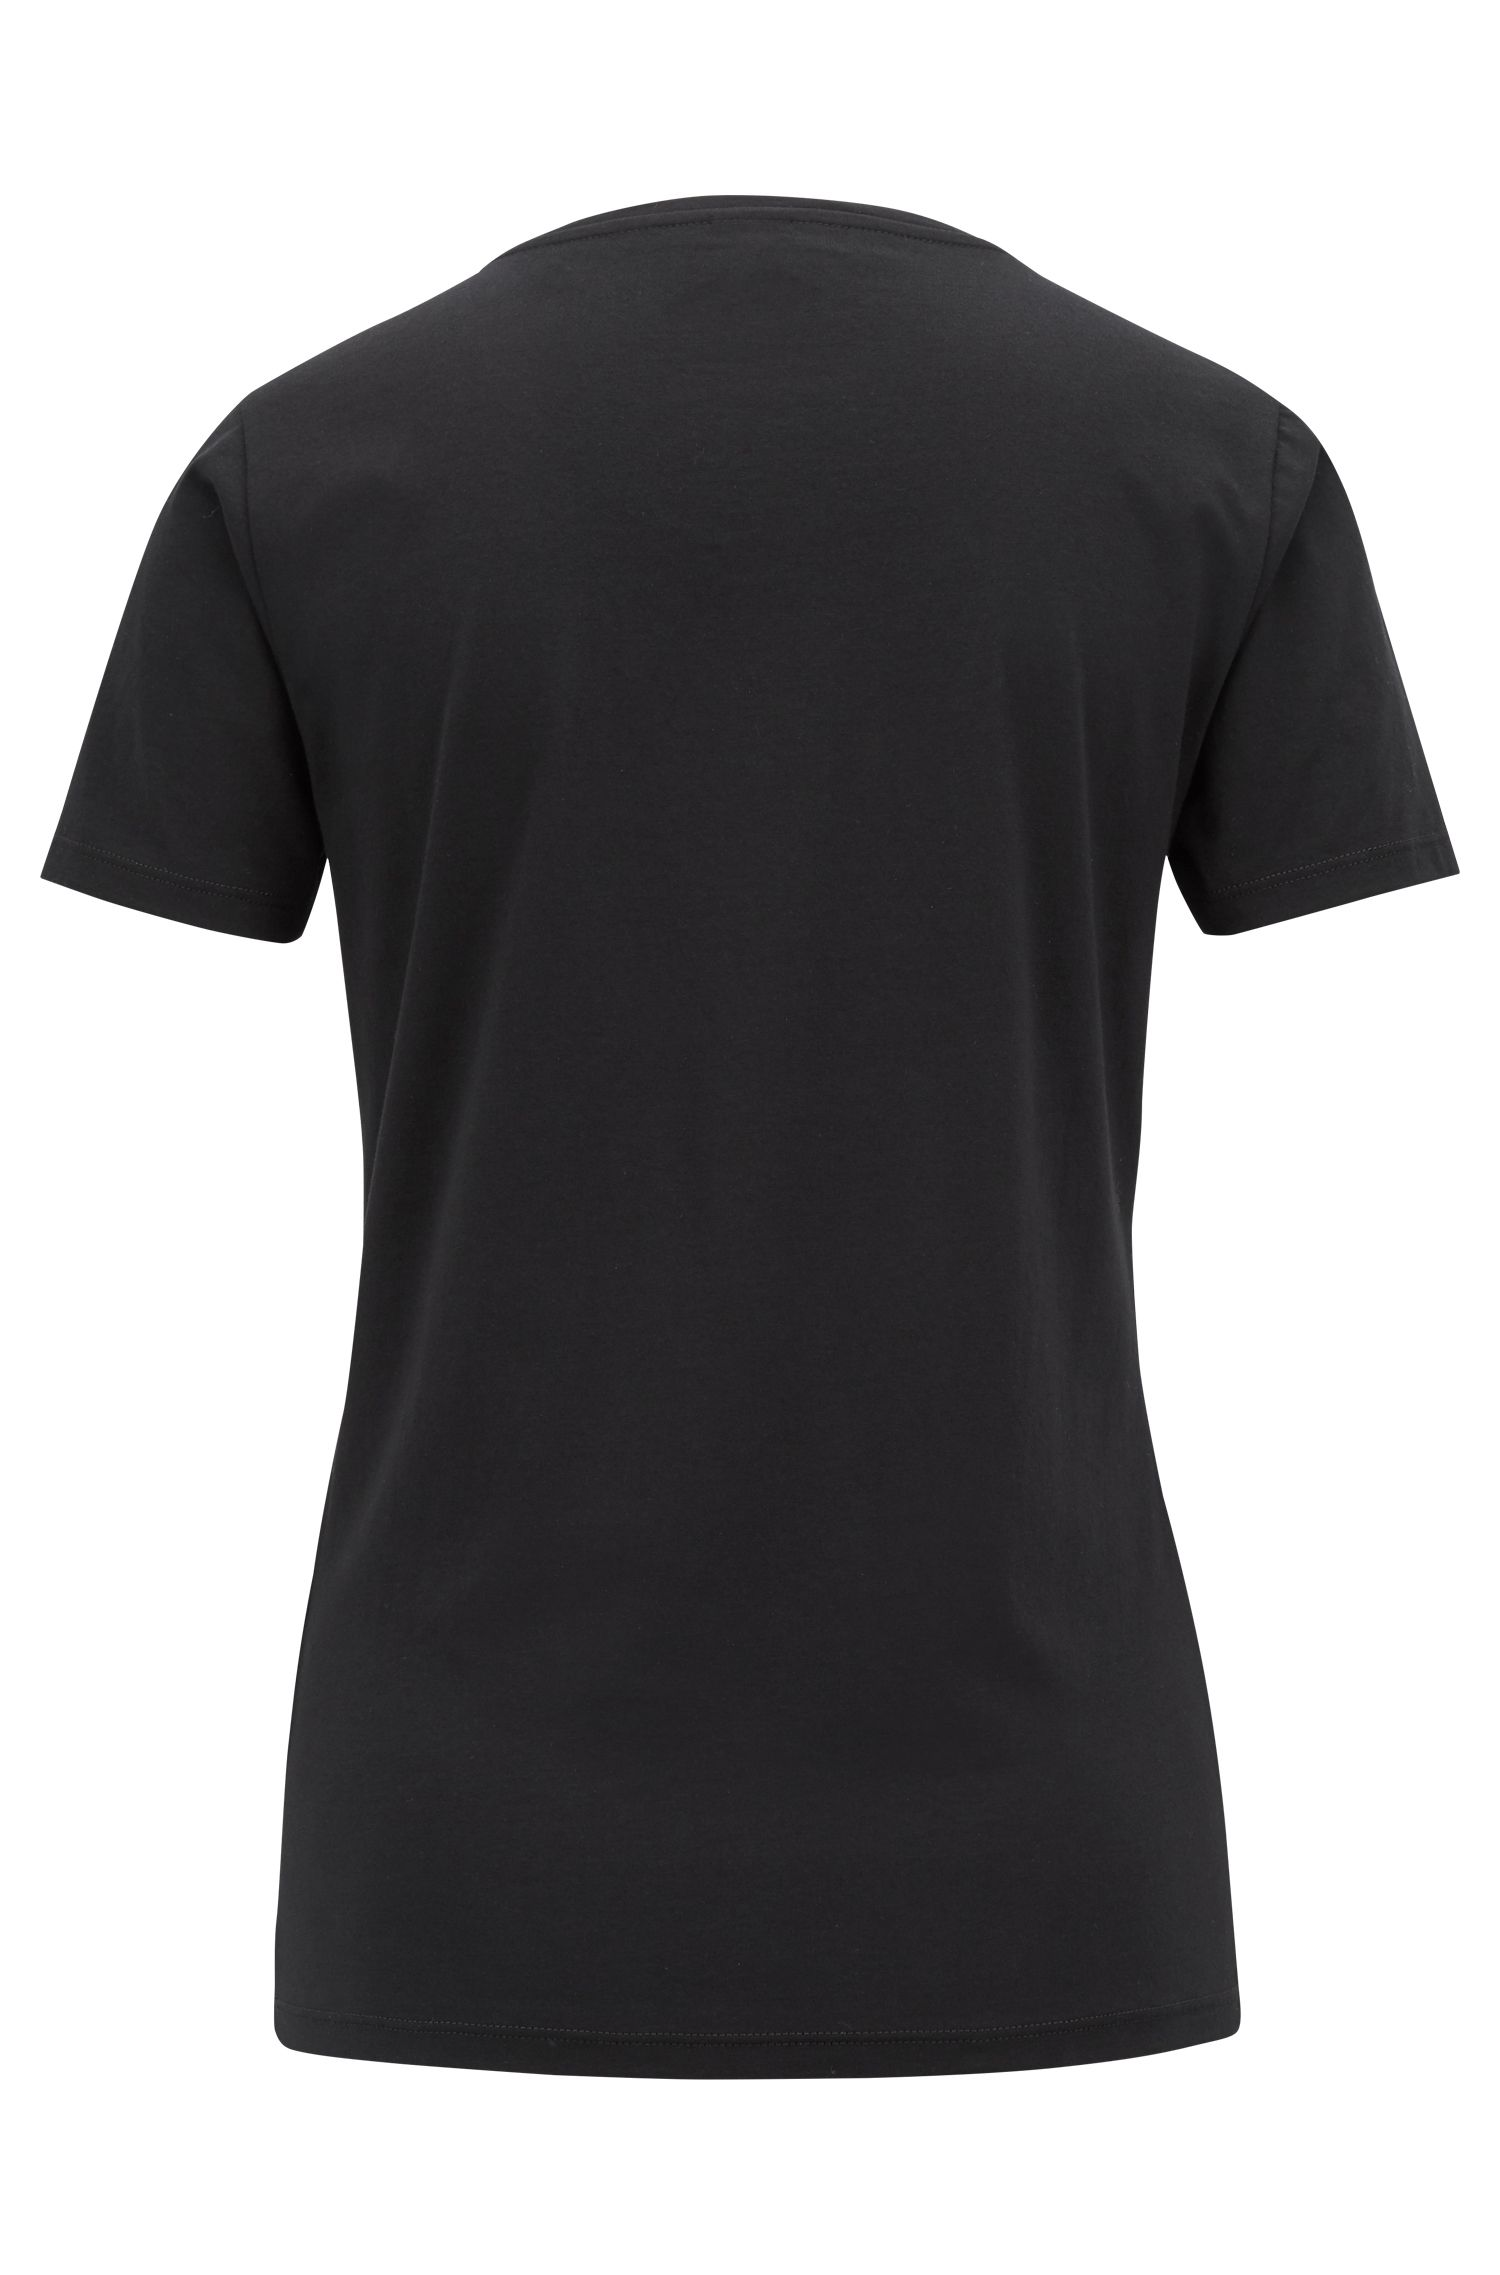 Slim-fit T-shirt with mixed heart and slogan print, Black